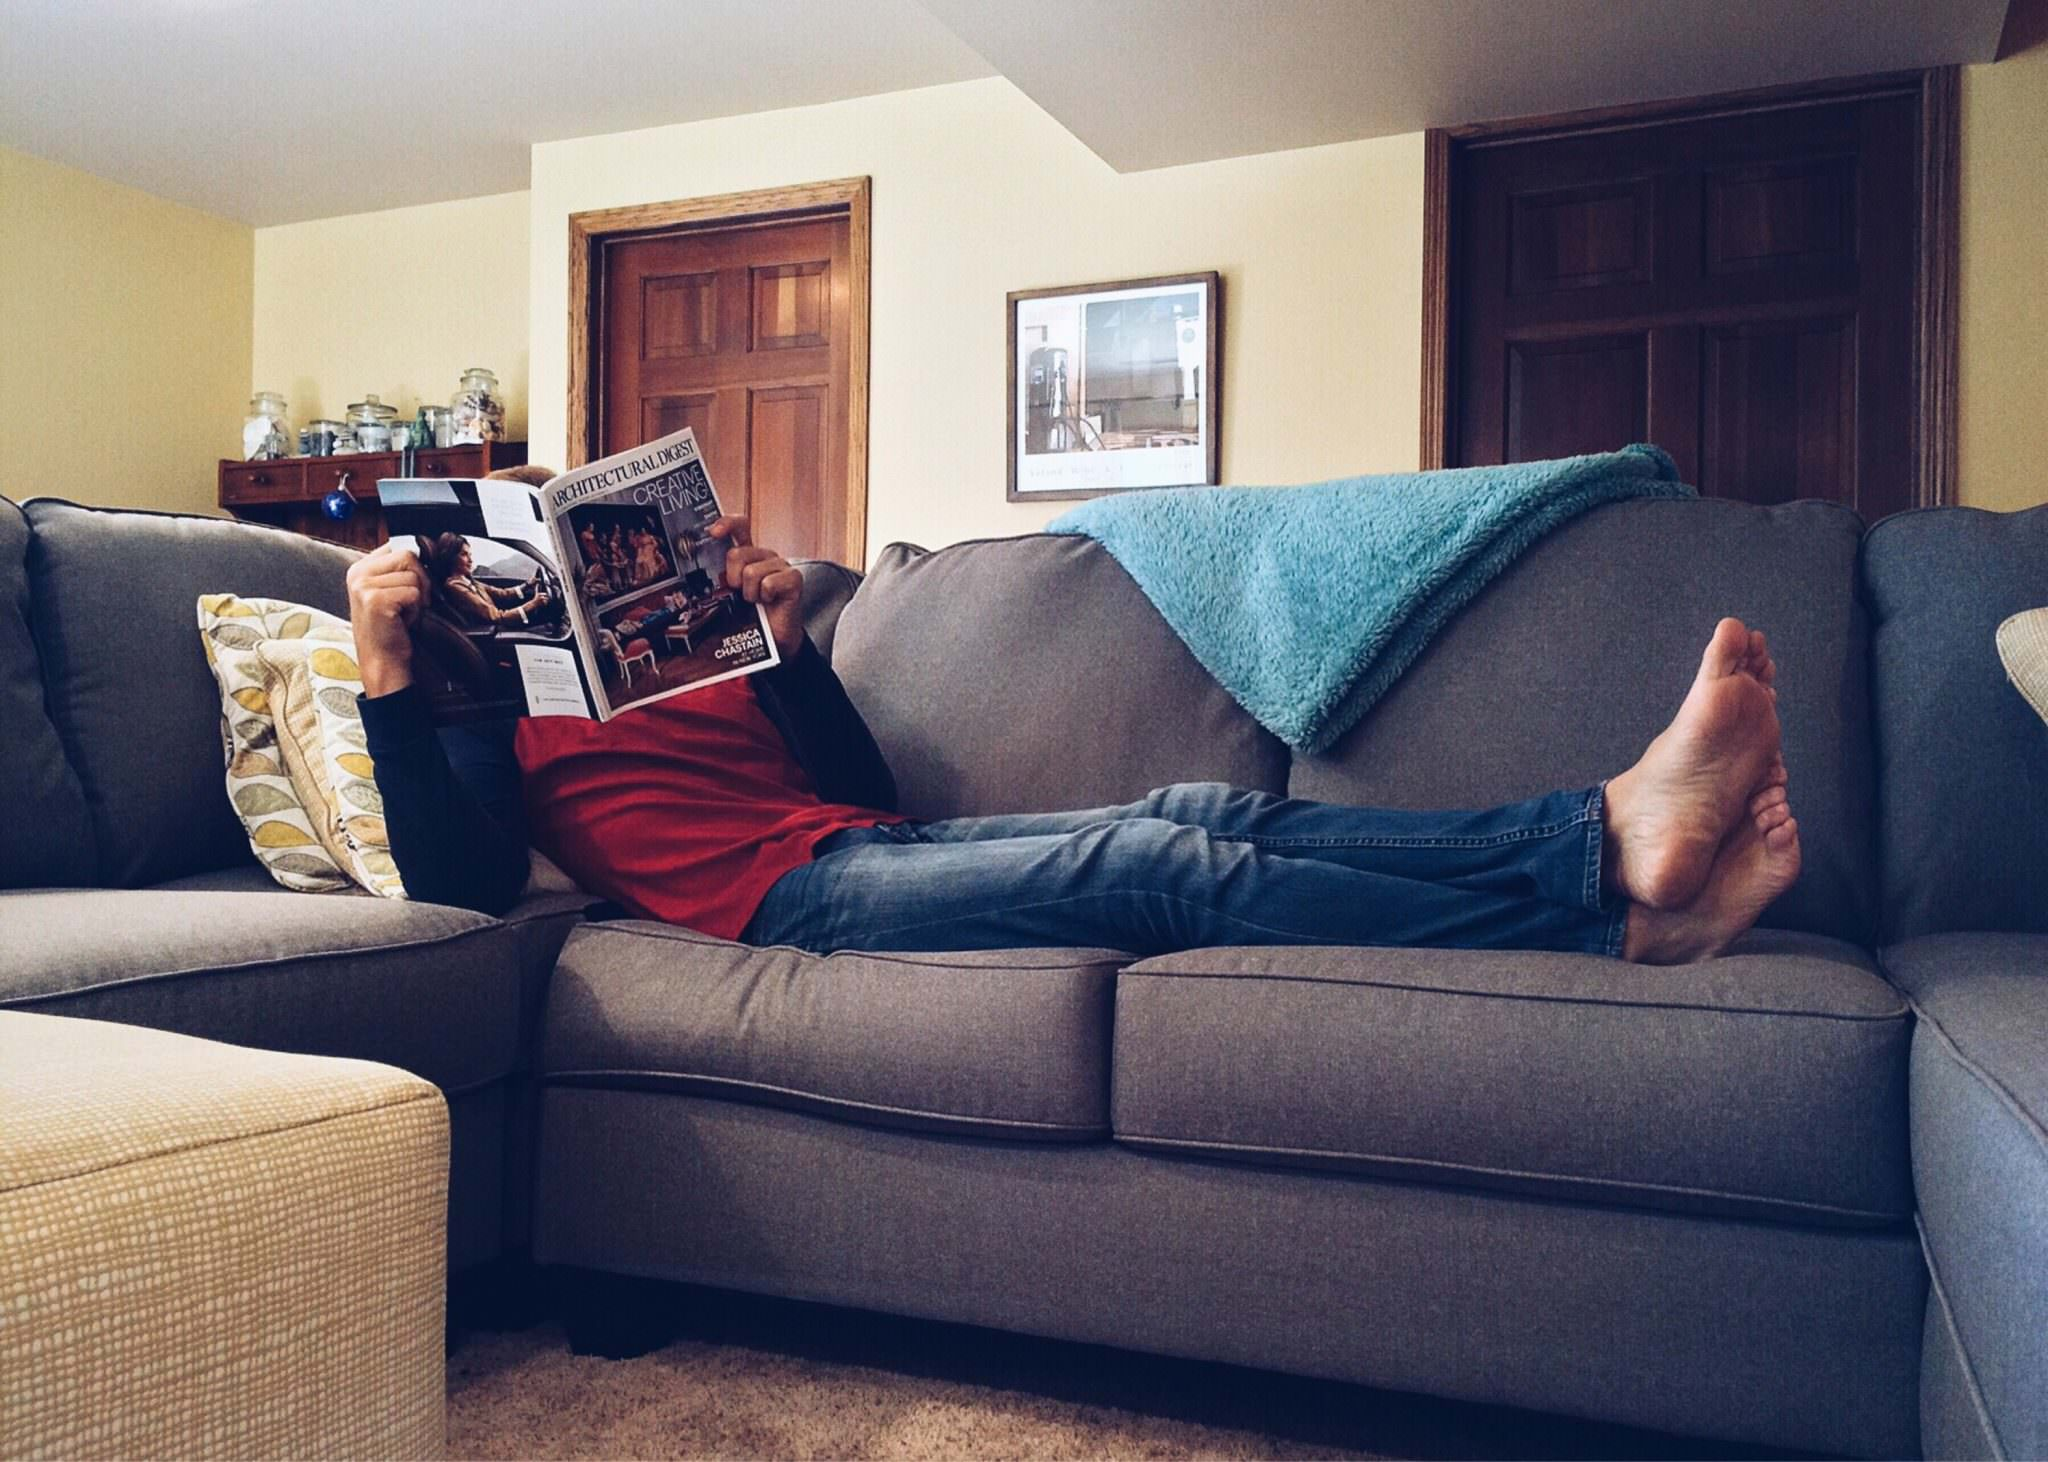 sit back and relax while our local ppc management pros handle your ad spend